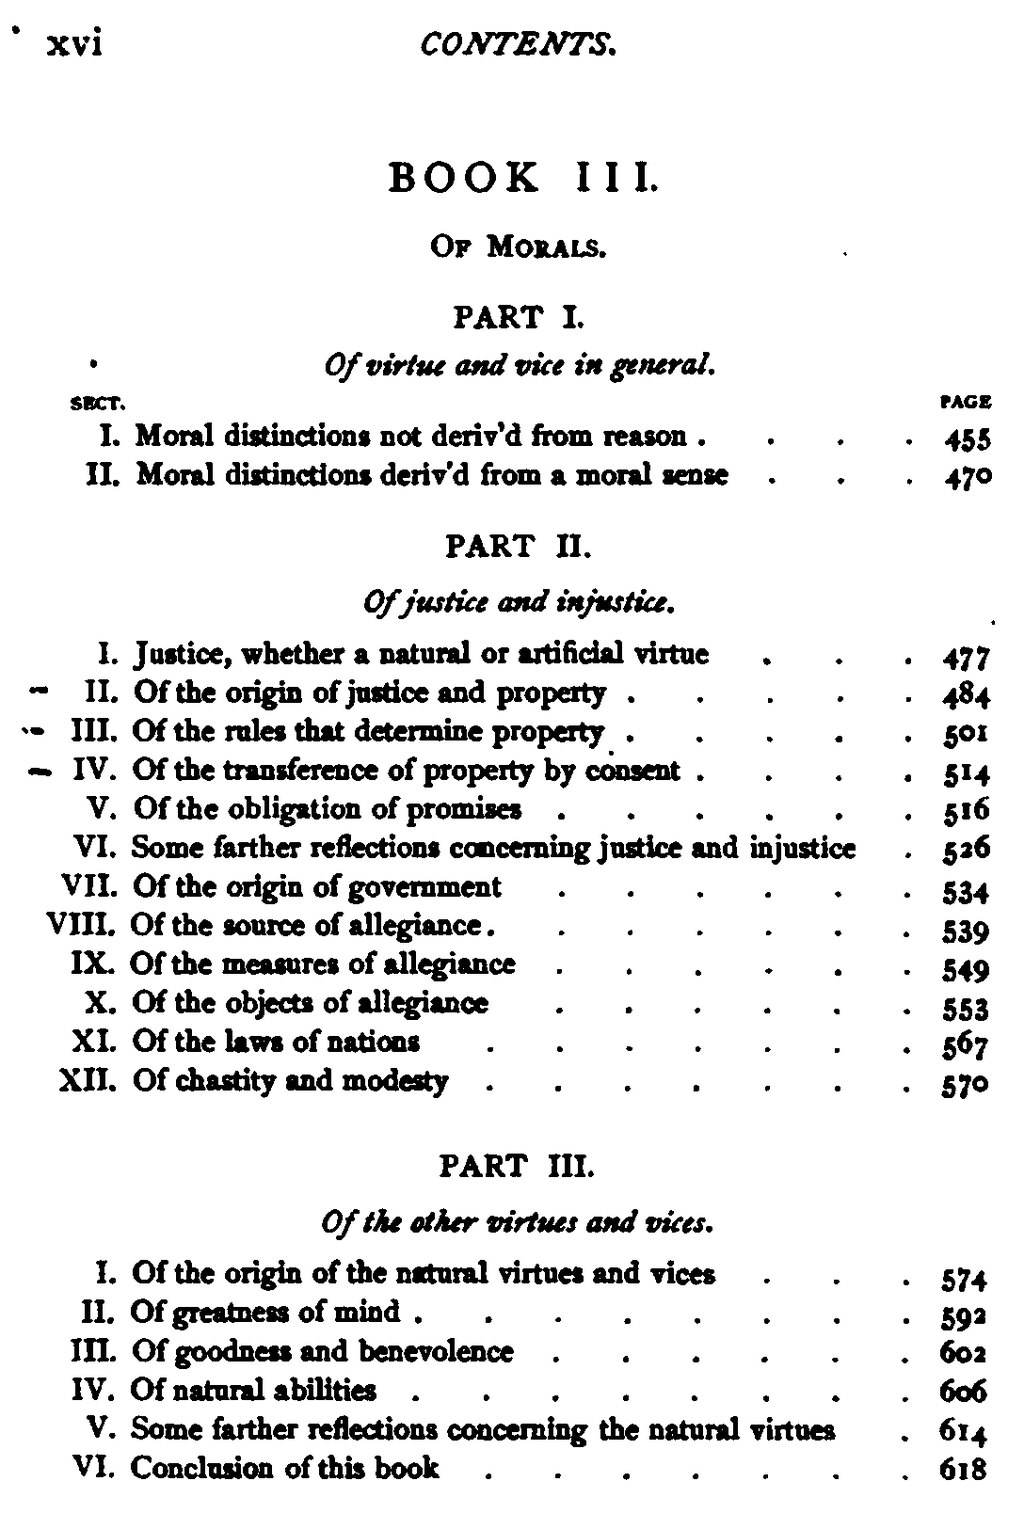 12 Virtues page:treatise of human nature (1888).djvu/12 - wikisource